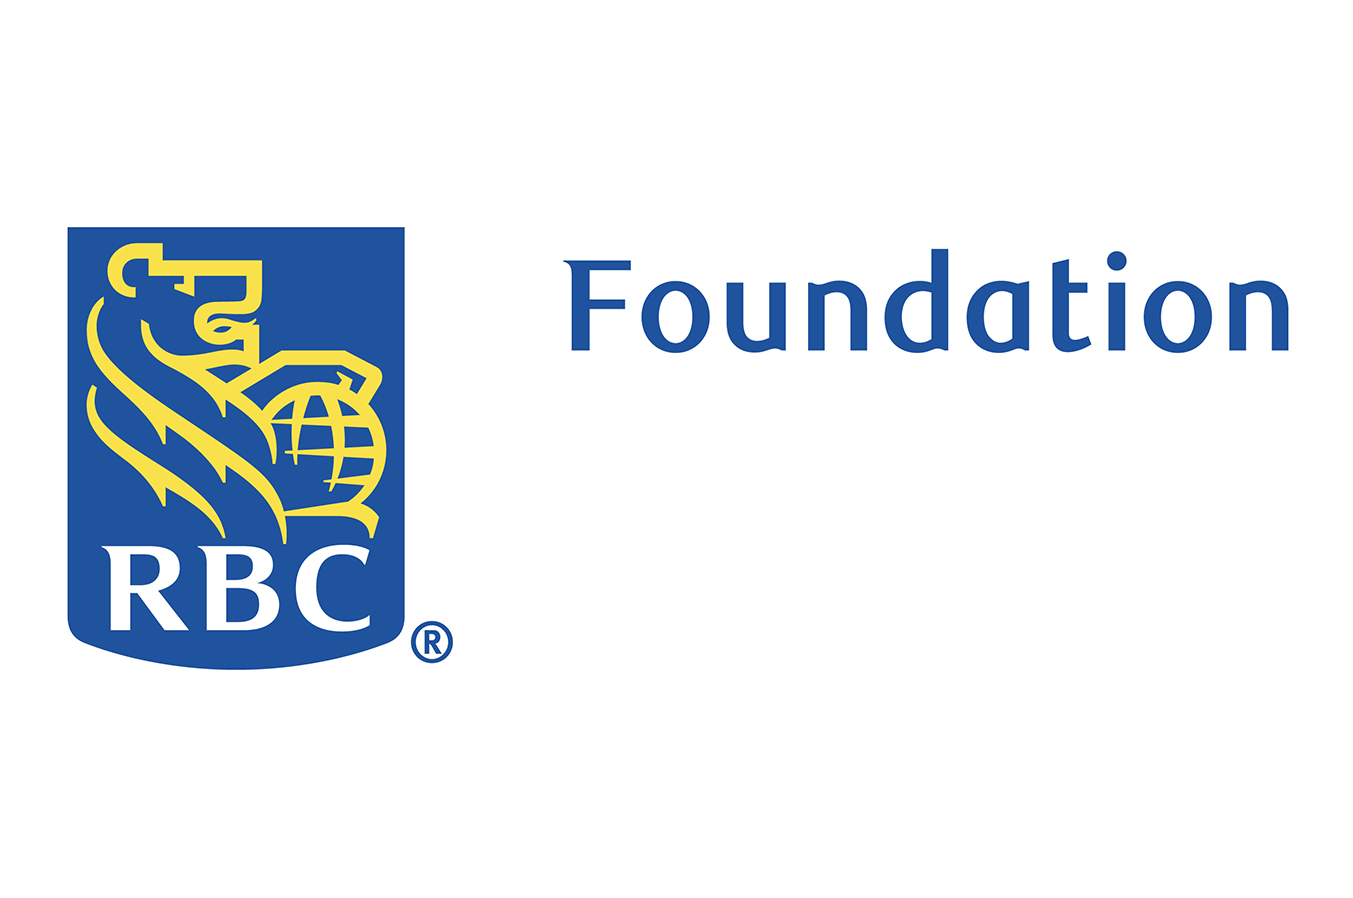 RBC Foundation helps improve Palliative Care